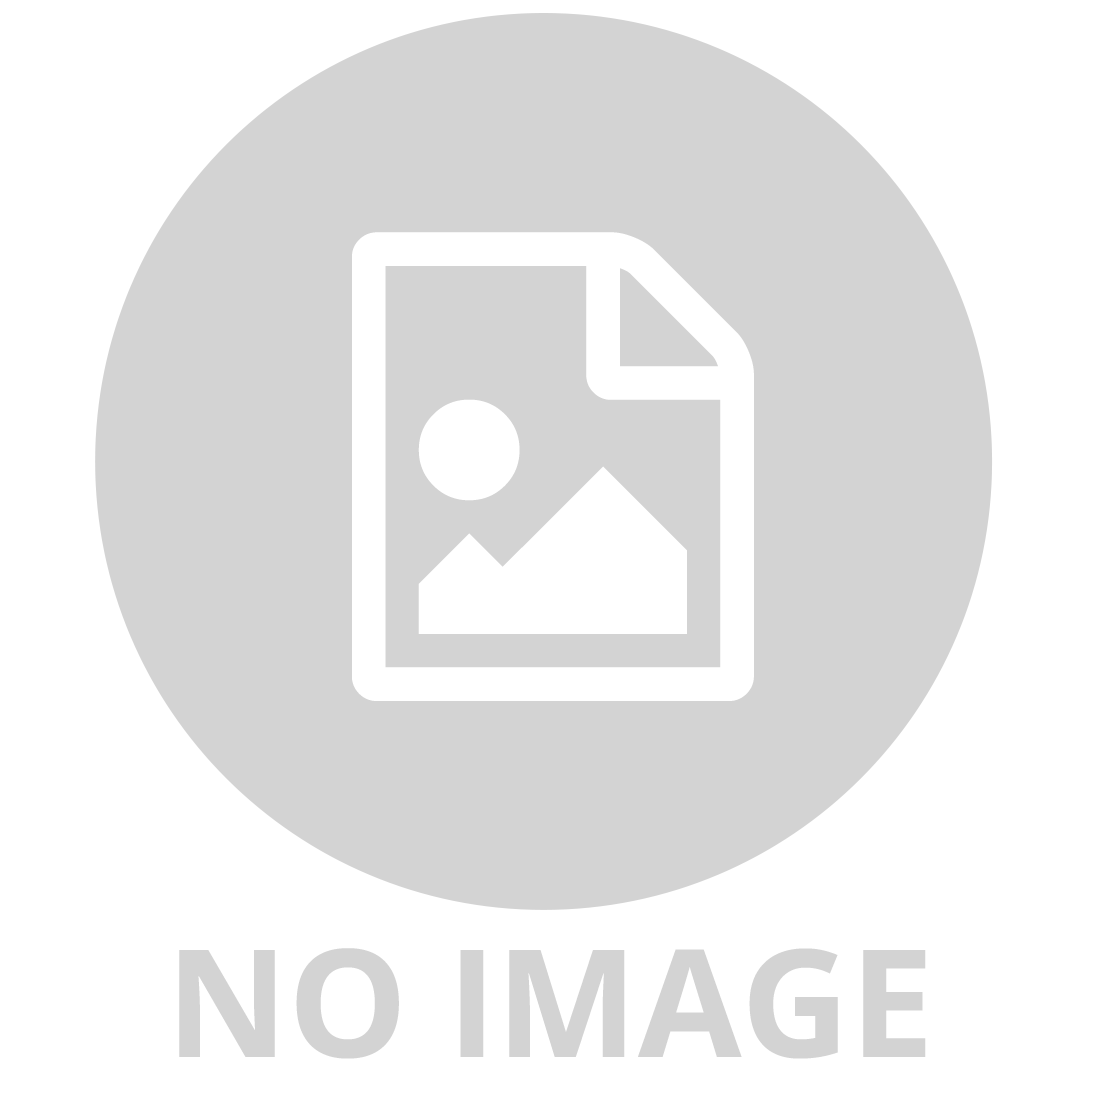 LEGO JURASSIC WORLD 75939 DR WU'S LAB: BABY DINOSAURS BREAKOUT